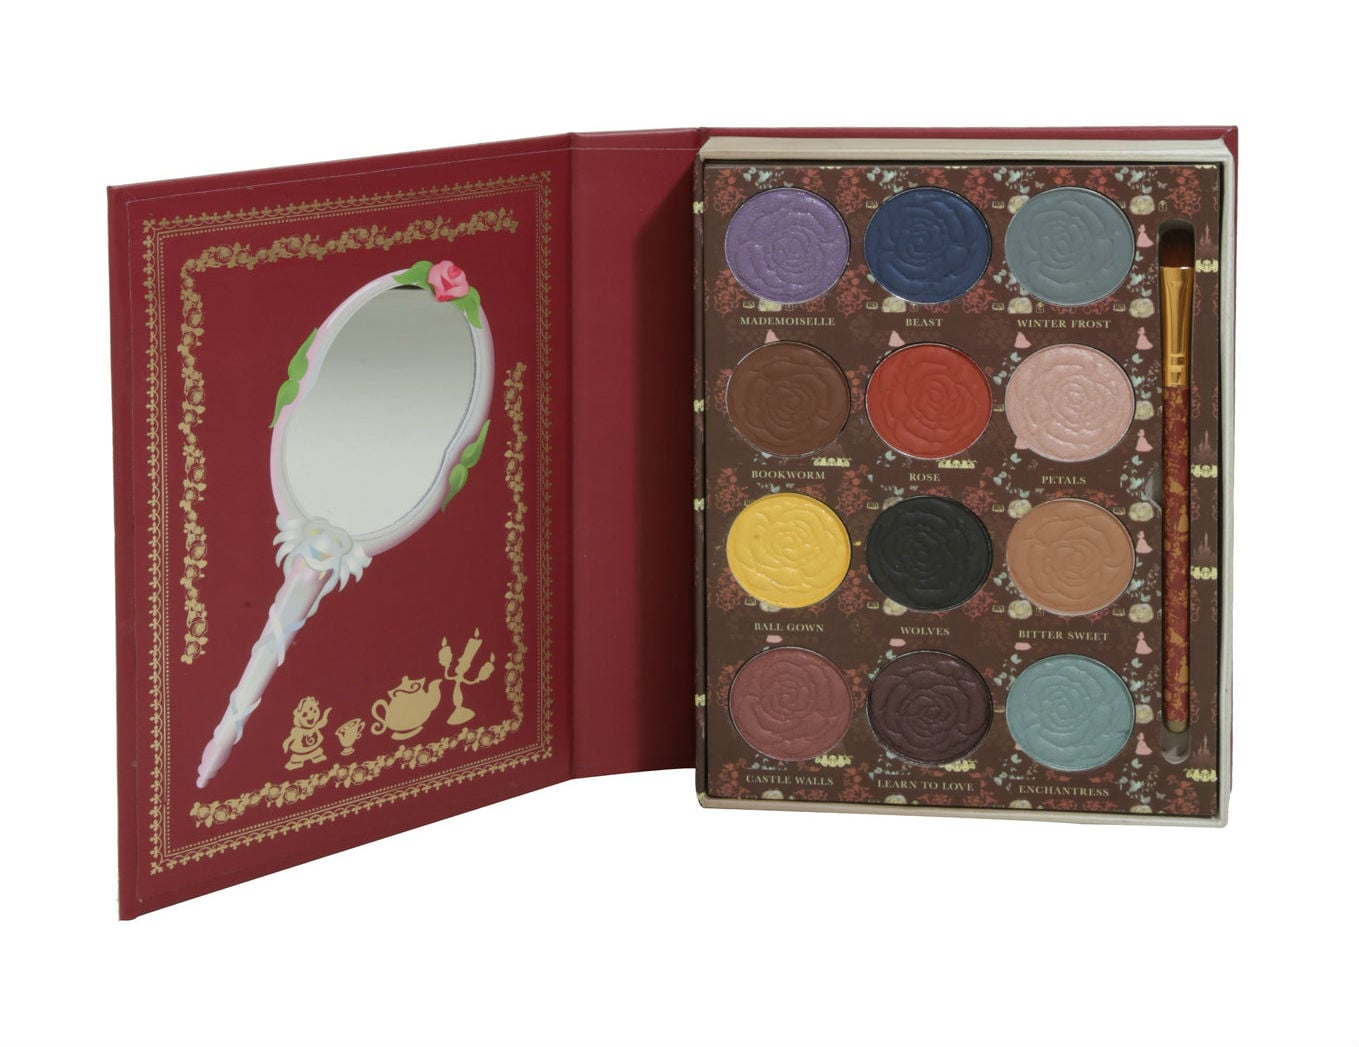 Beauty And The Beast Eye Shadow Palette From Hot Topic